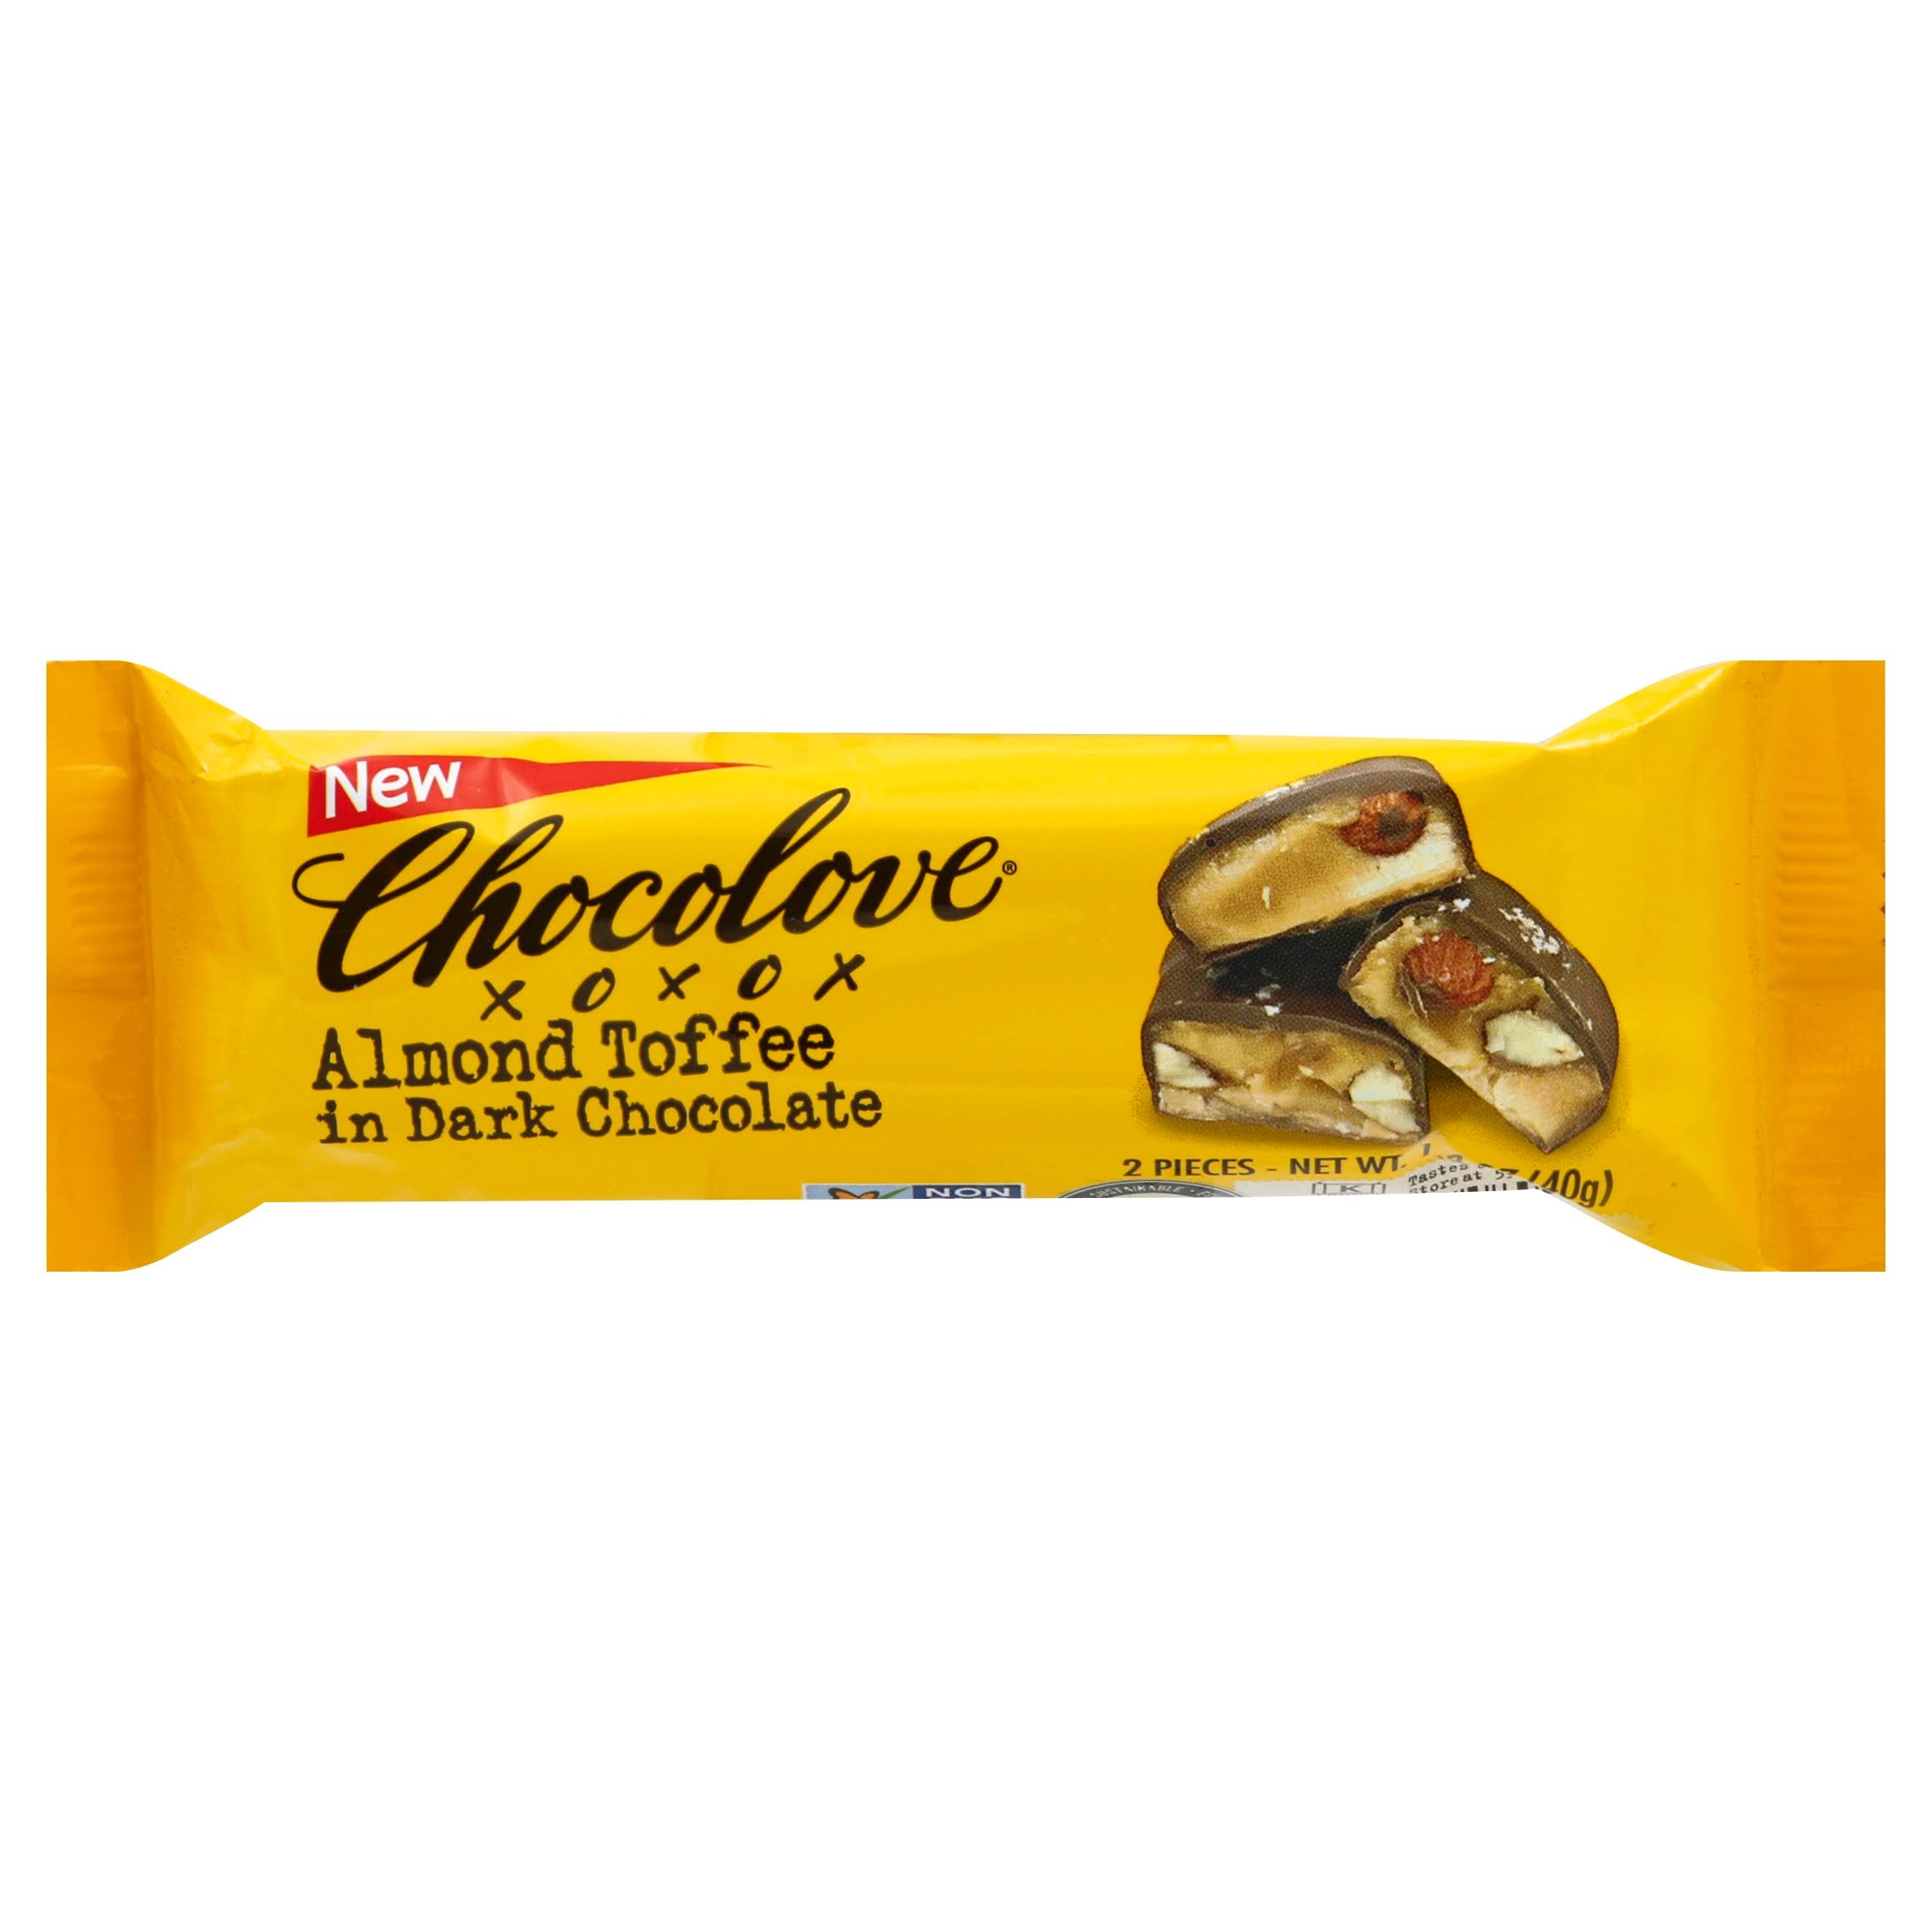 Chocolove Almond Toffee, in Dark Chocolate - 2 pieces, 1.4 oz